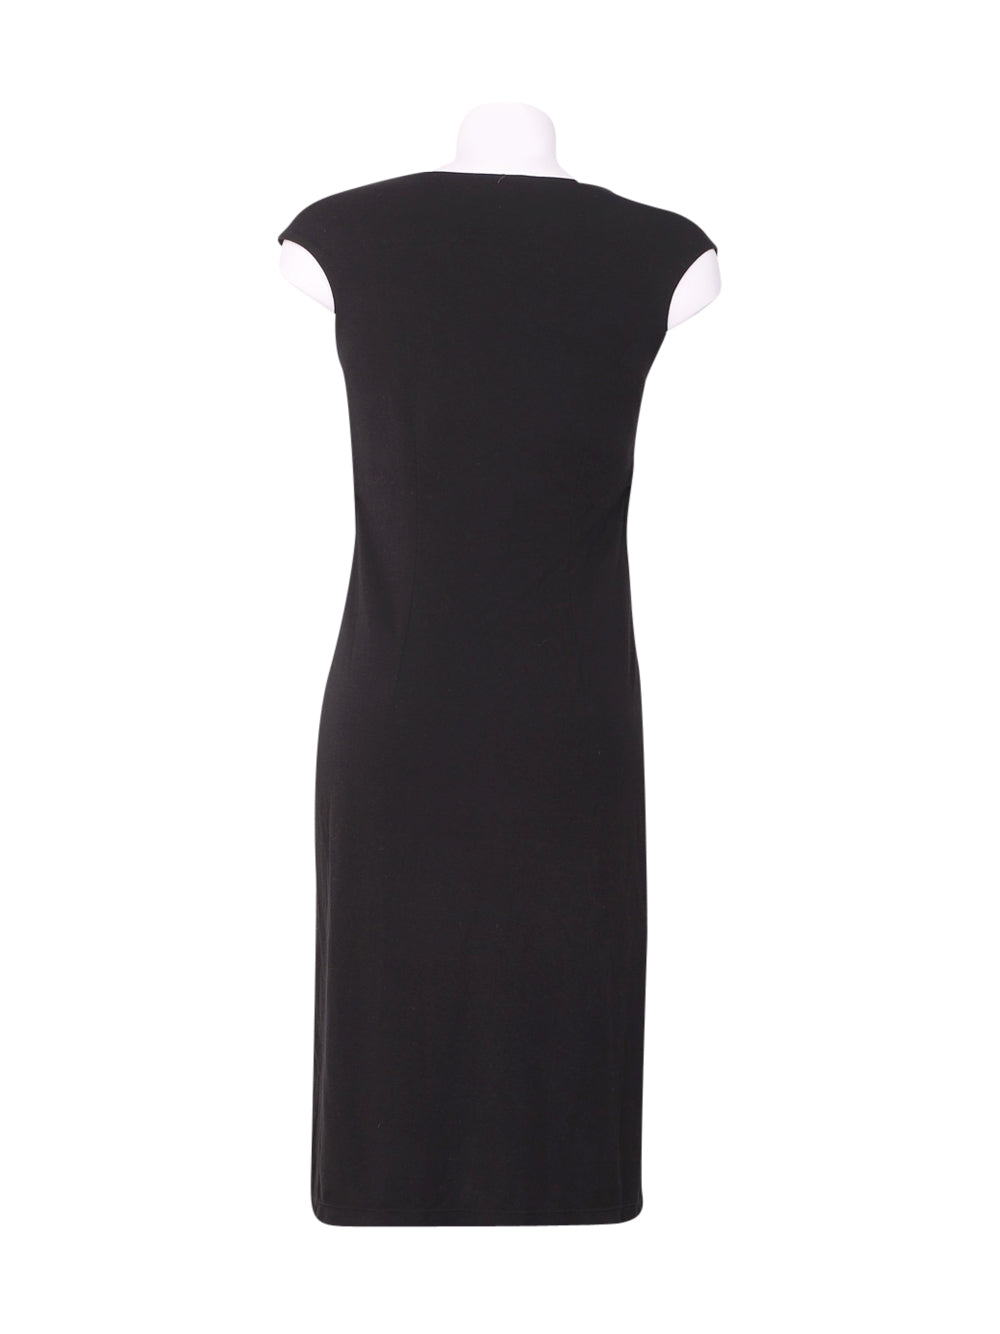 Back photo of Preloved Mexx Black Woman's dress - size 10/M